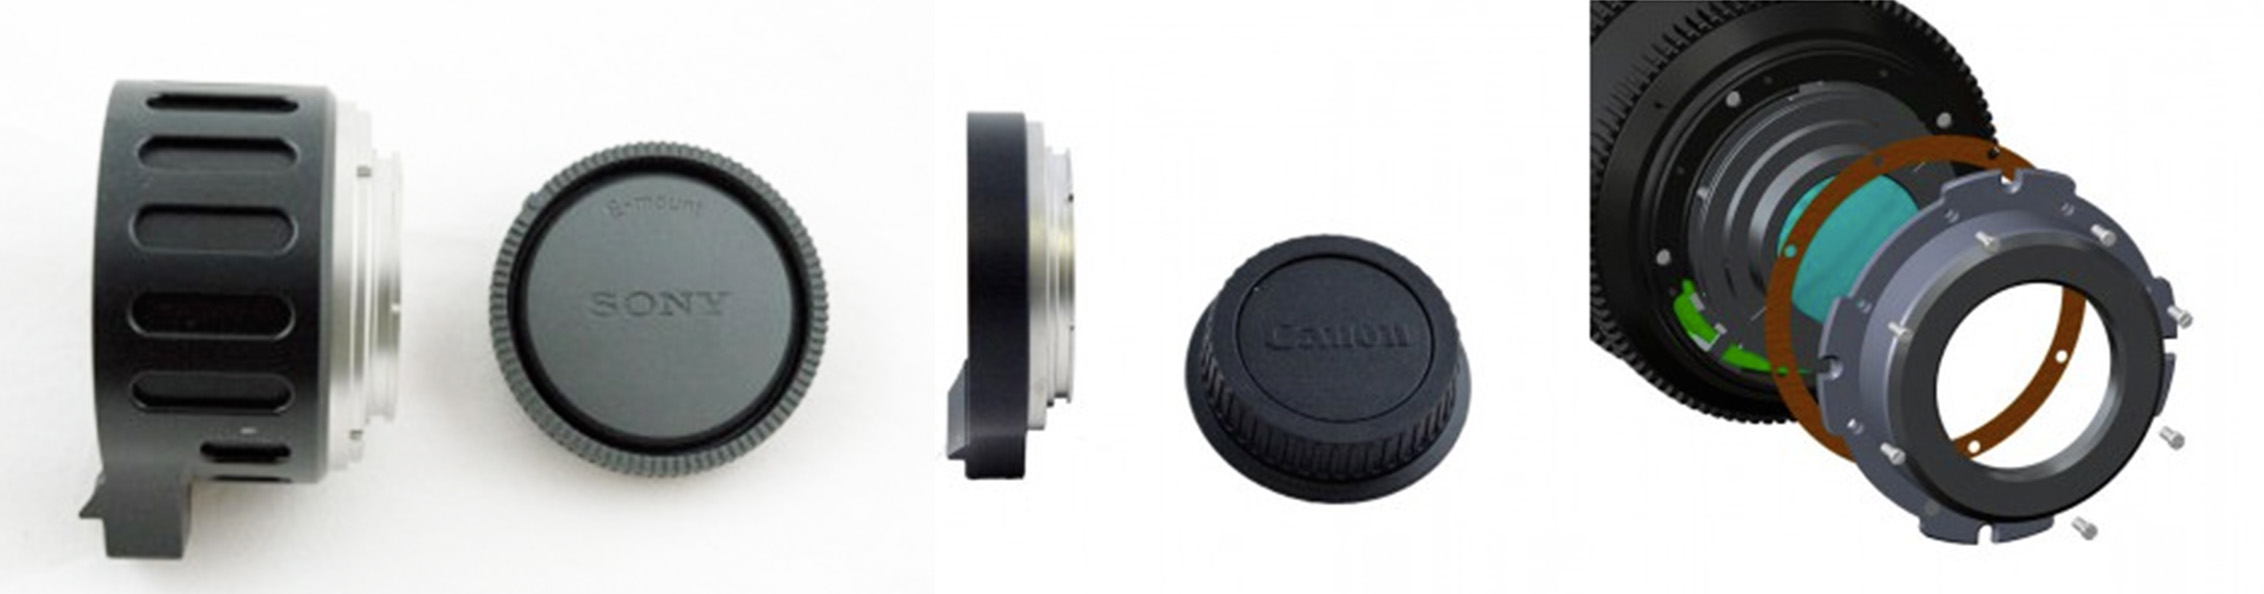 PS Technik Zoom lens mount options